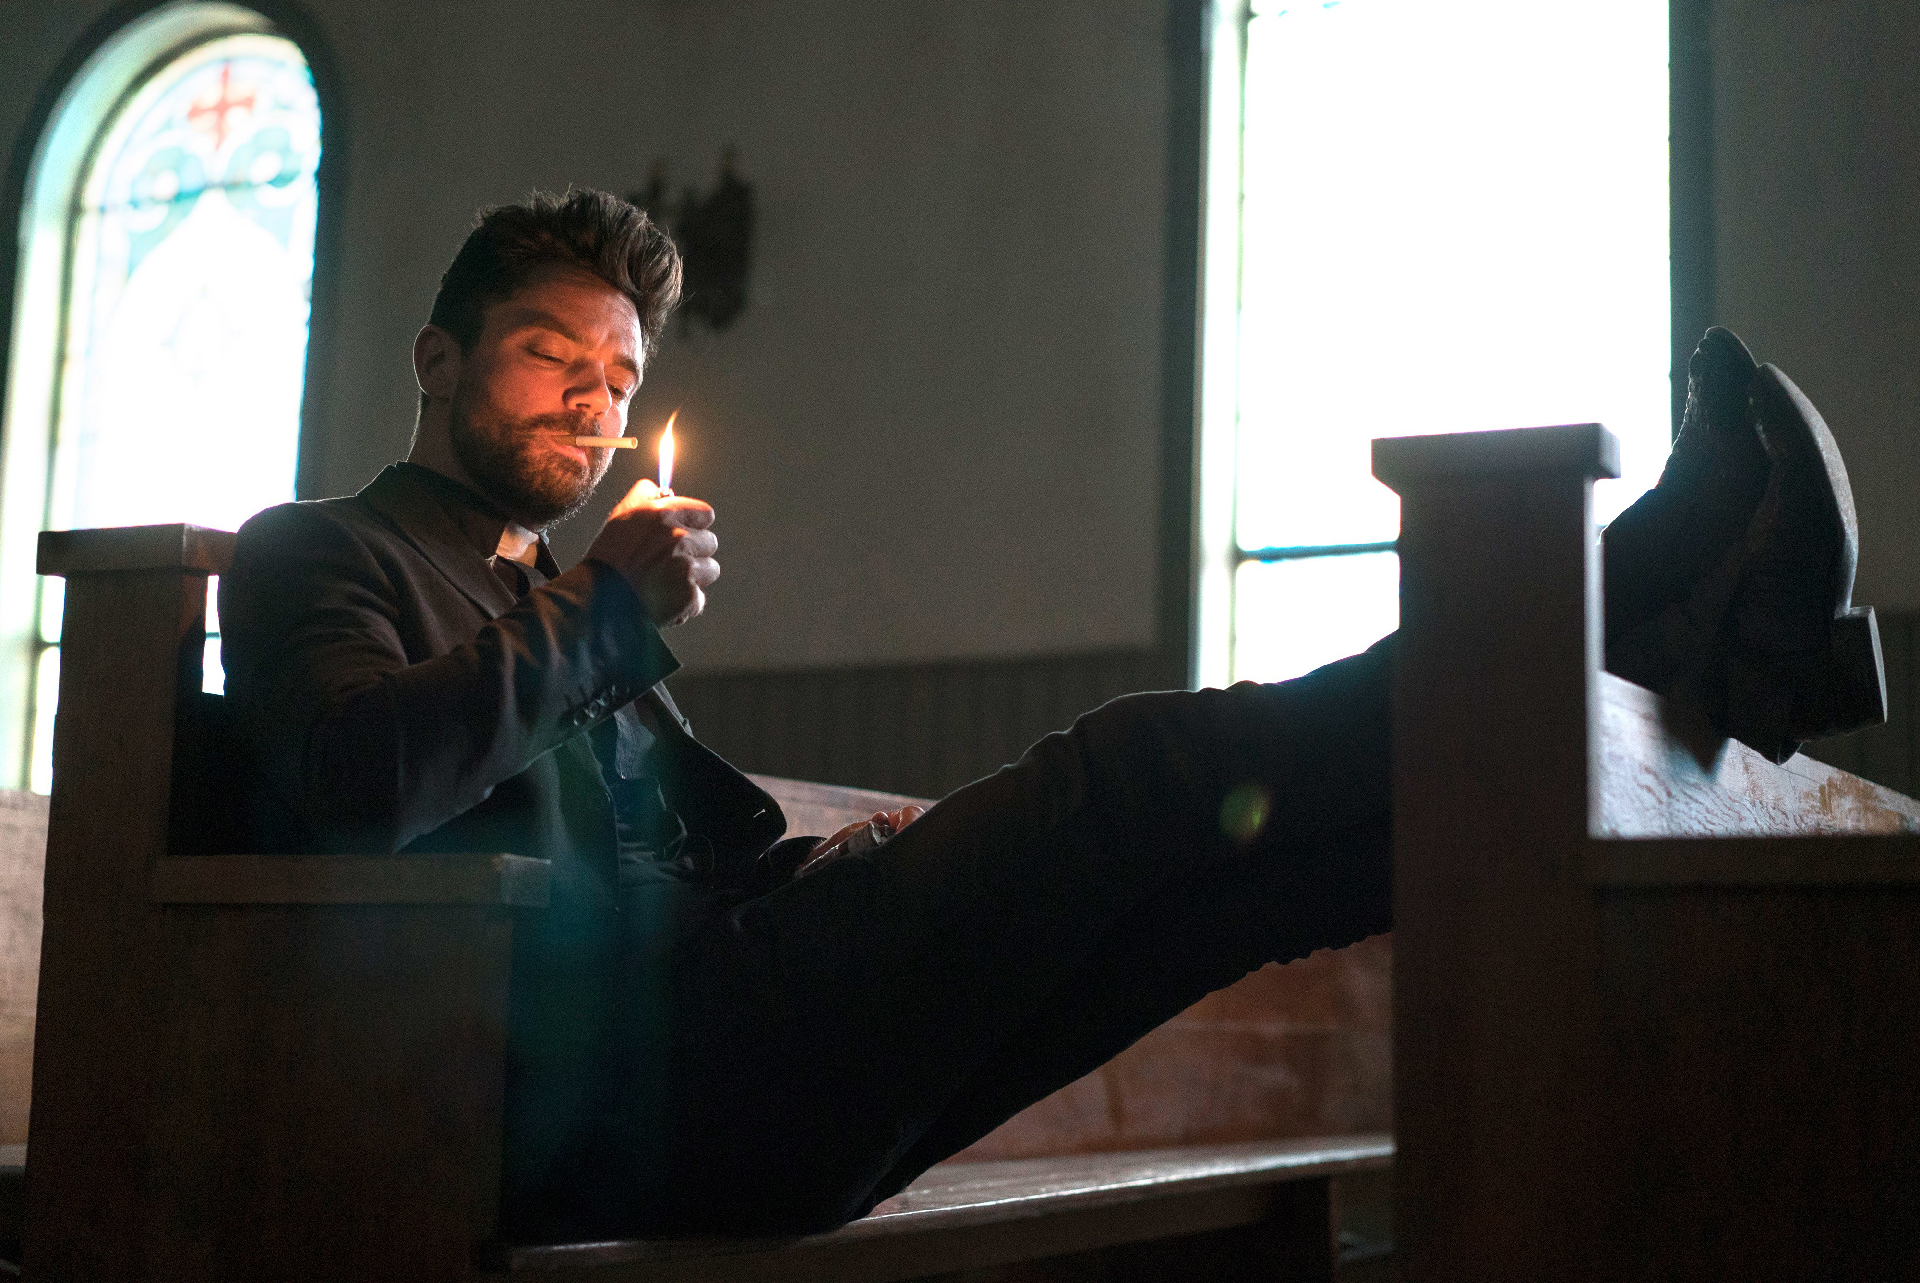 https://cinemaplanet.pt/wp-content/uploads/2017/04/preacher-amc-dominic-cooper.jpg